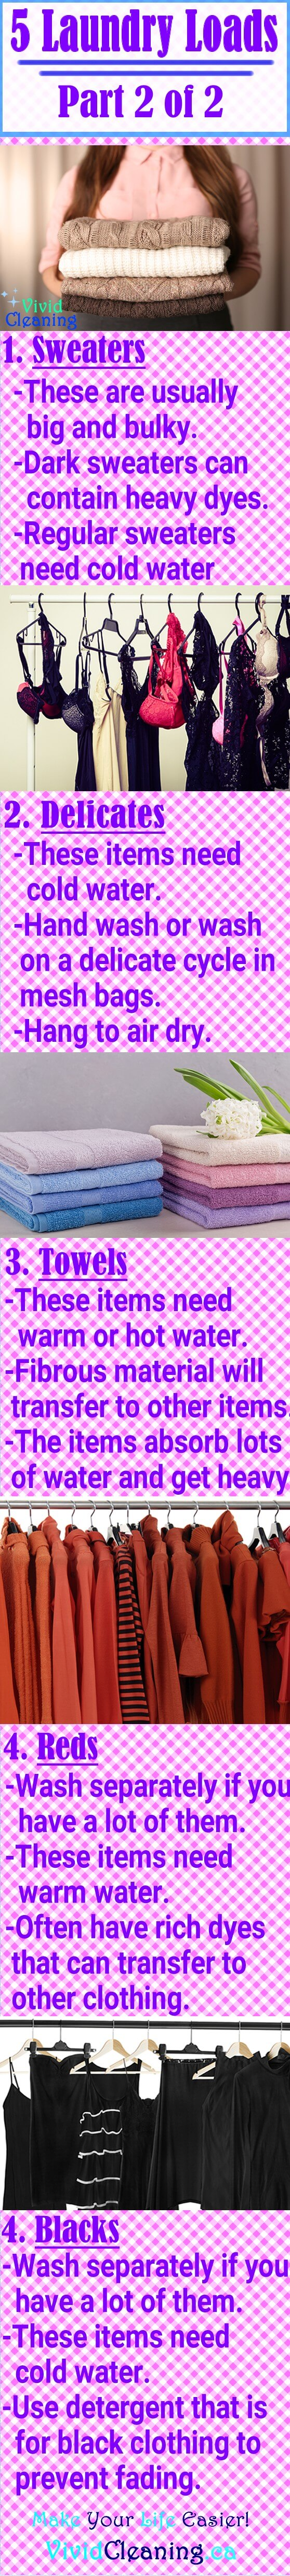 In general, sweaters should be washed with cold water. Hoodies and sweaters are made from thick and heavy material. They also can contain rich dyes which can stain other clothing. The heavy material can cause other clothing to thin out.